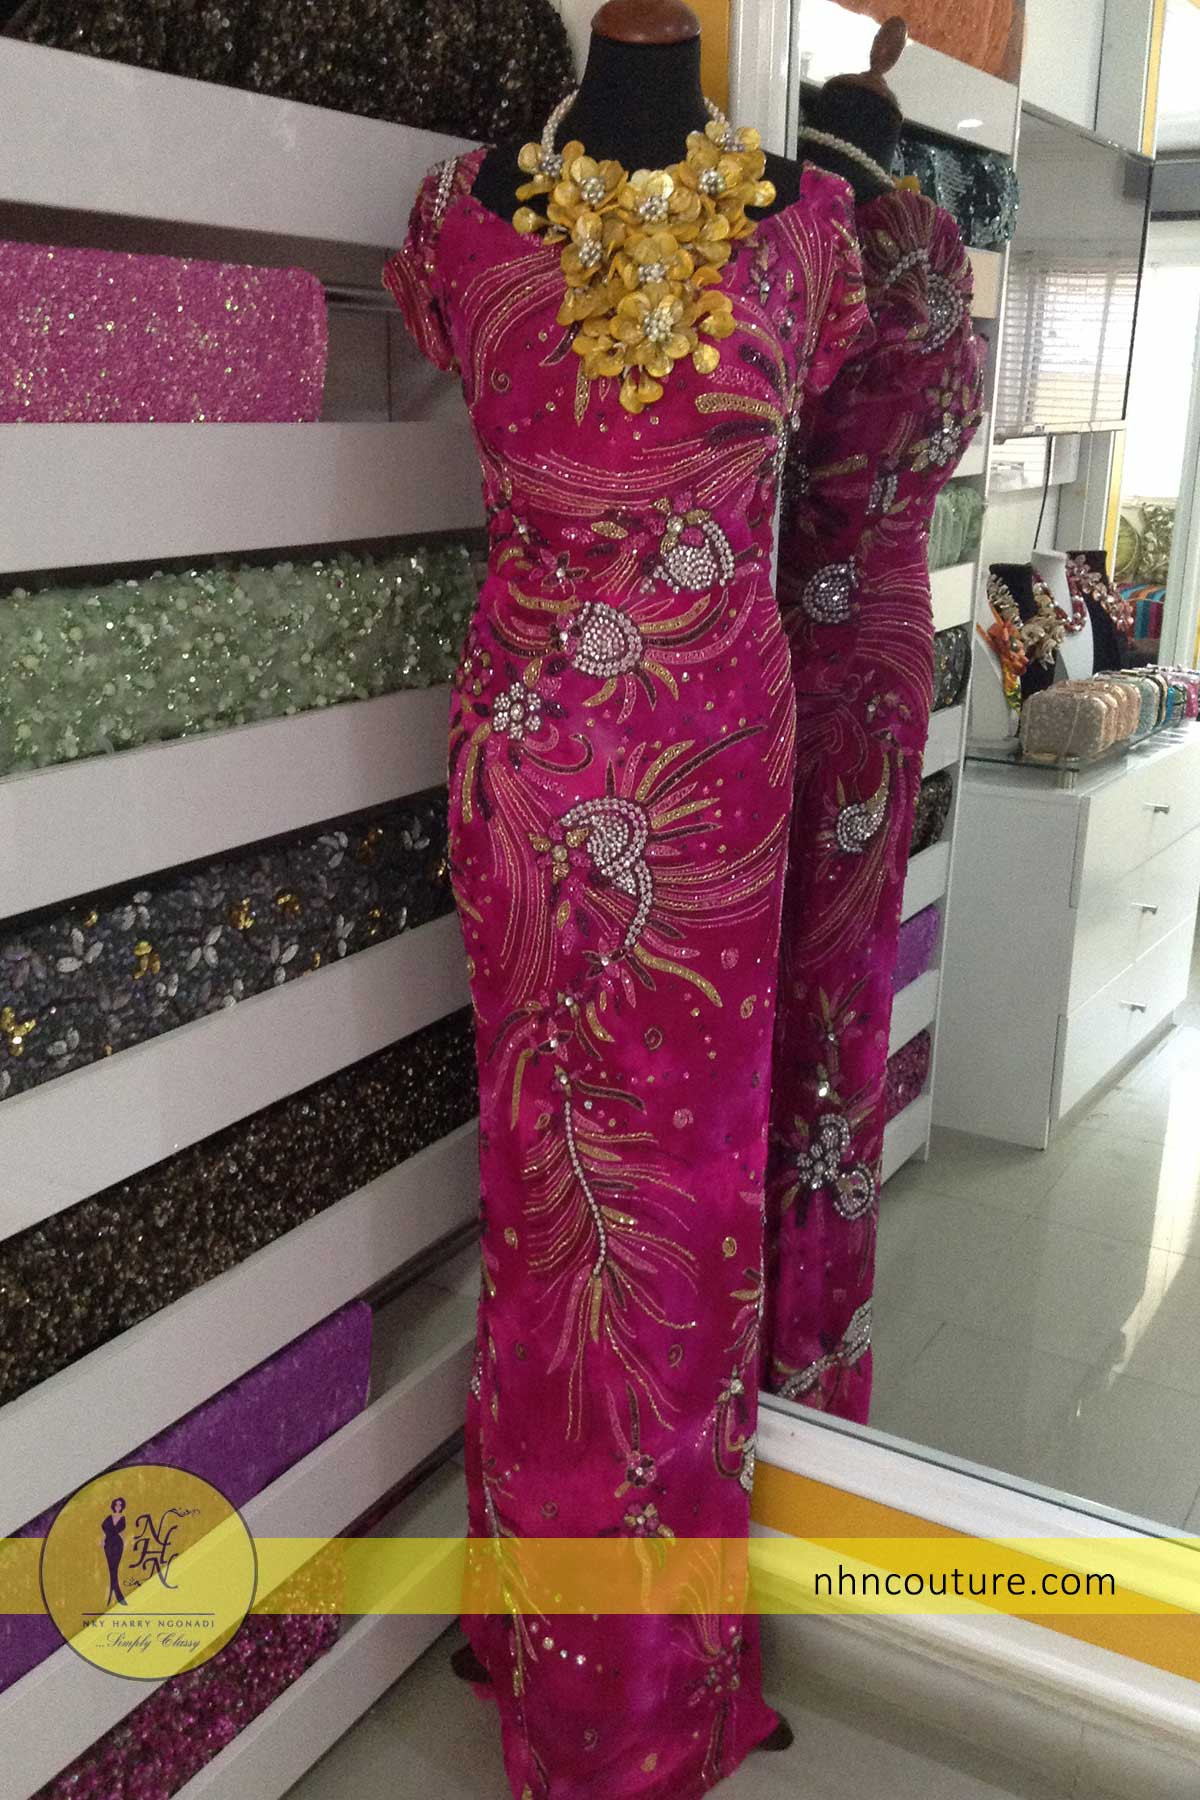 ready-to-wear_asoebi_nigerian-traditional-attire_sequined-pink-lace_NHN